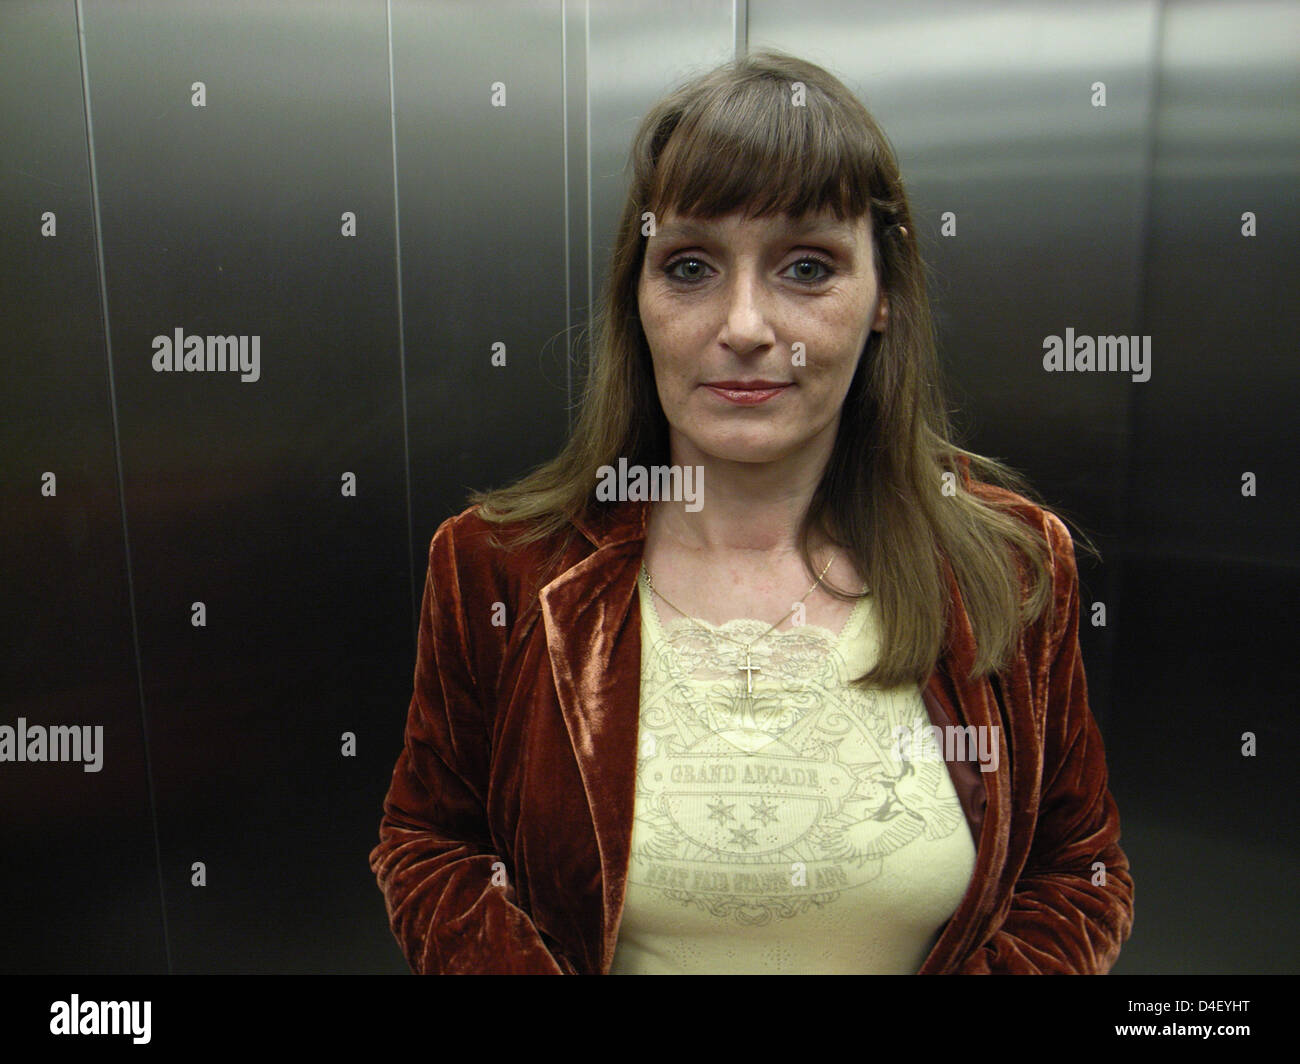 Christiane F. is pictured in October 2006. Since 1978 she